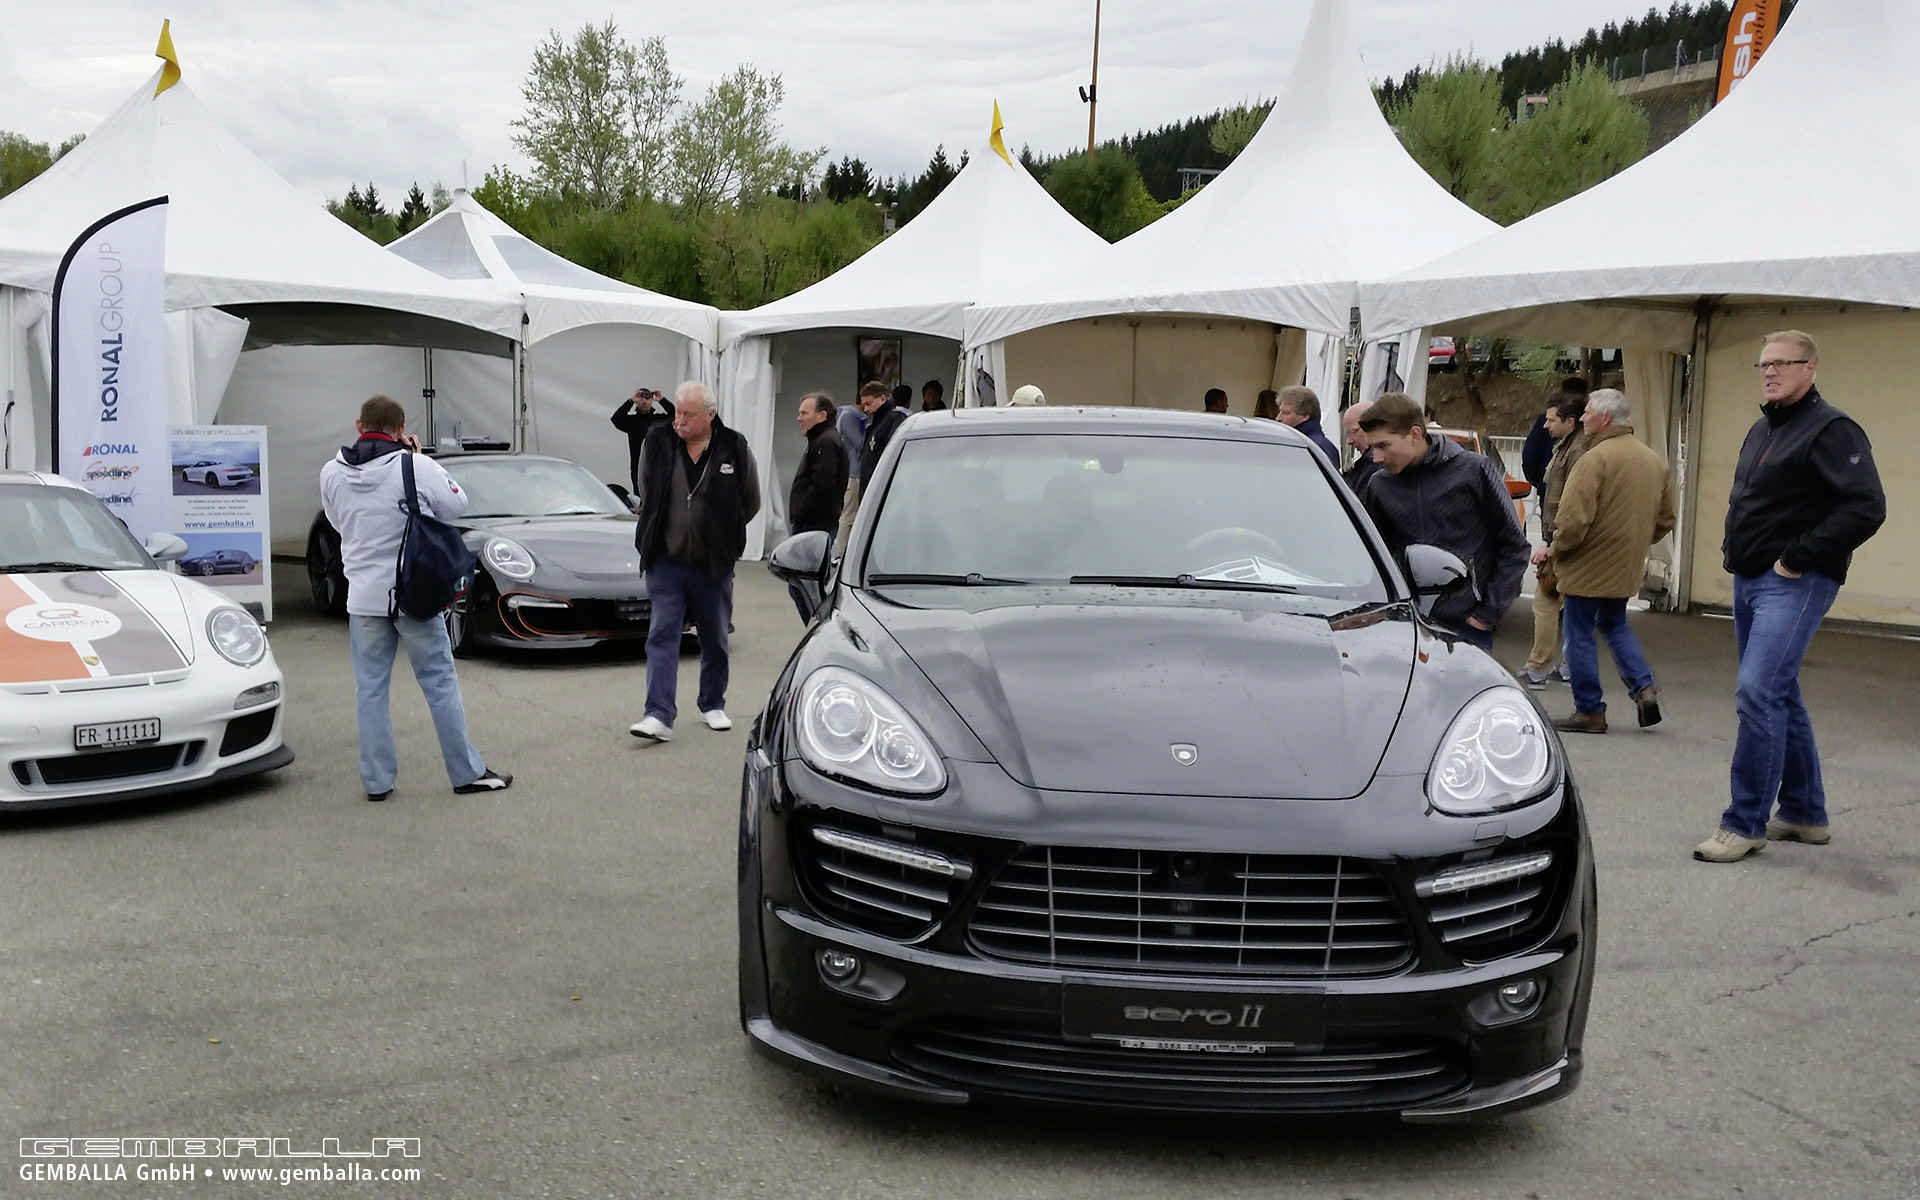 gemballa_gmbh_events_spa_francorchamps_2014_1